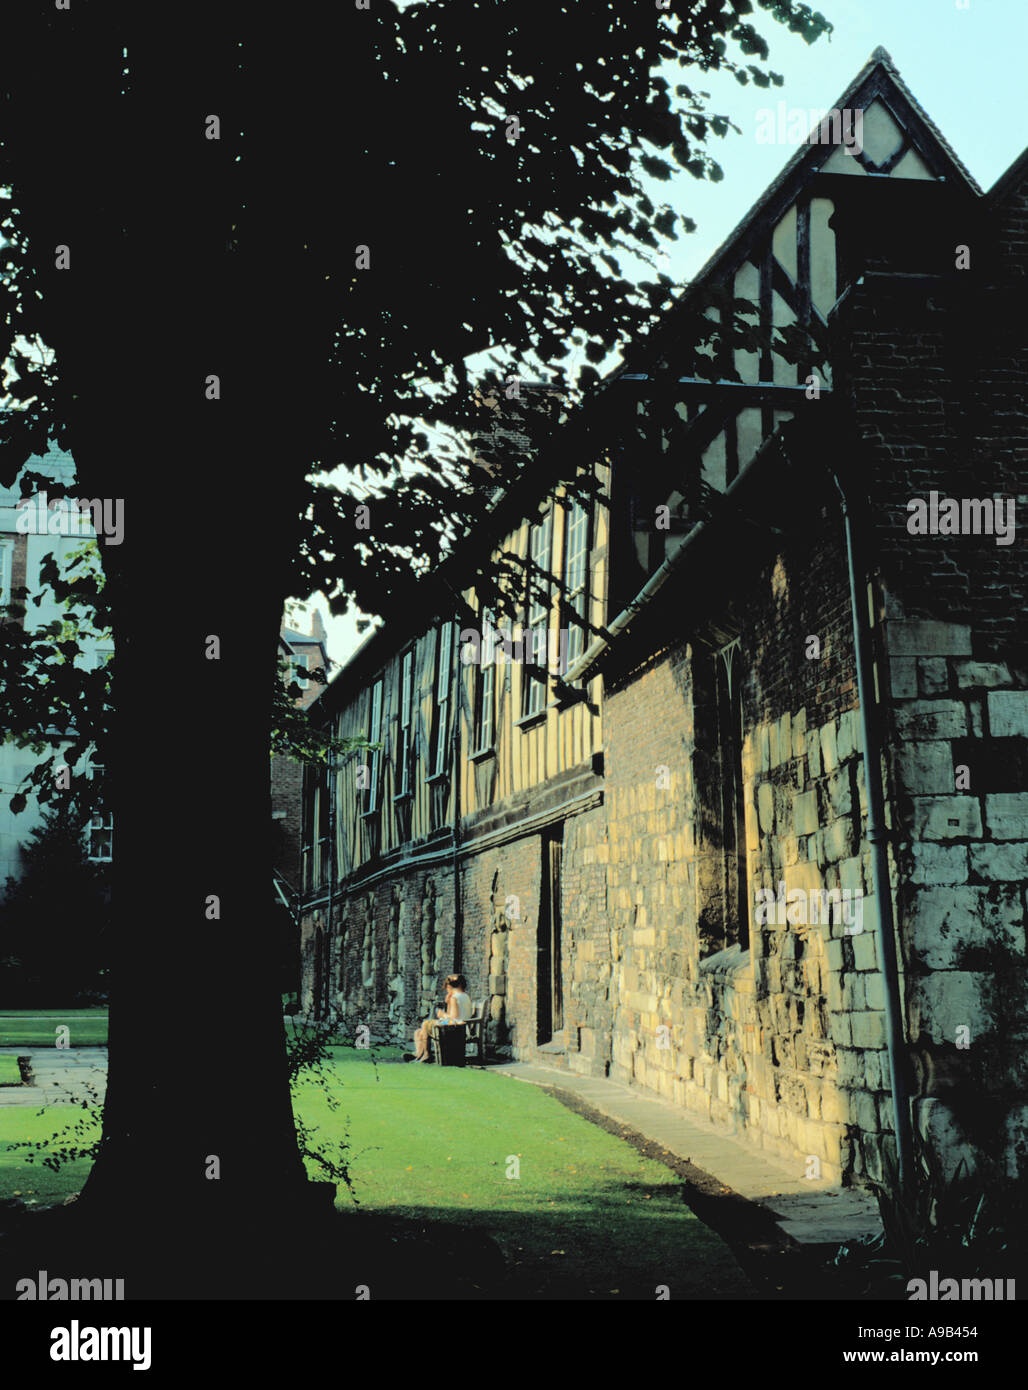 Picturesque ancient Merchant Adventurers Hall, Fossgate, City of York, North Yorkshire, England, UK. - Stock Image